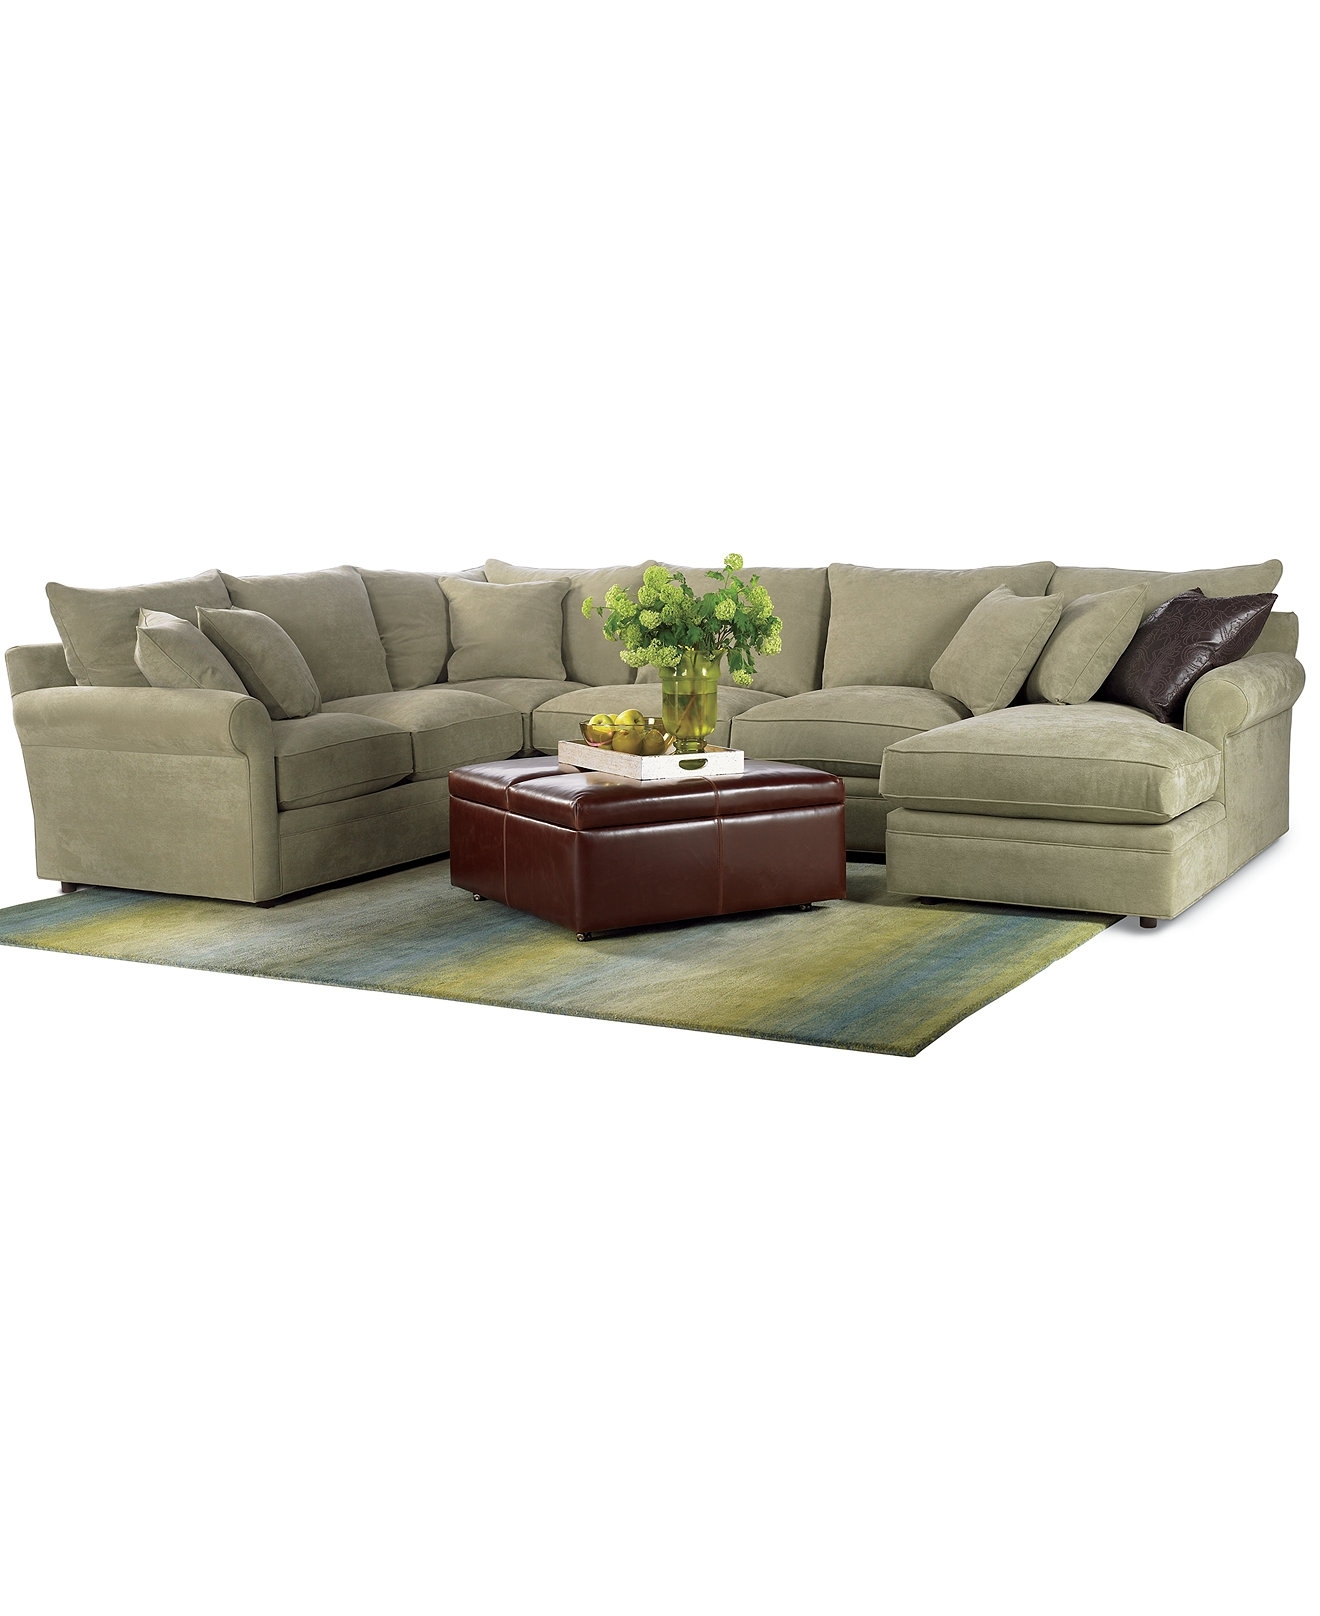 Current Armless Sectional Sofas Within Doss Fabric Microfiber Sectional Sofa, 4 Piece (left Arm Facing (View 16 of 20)